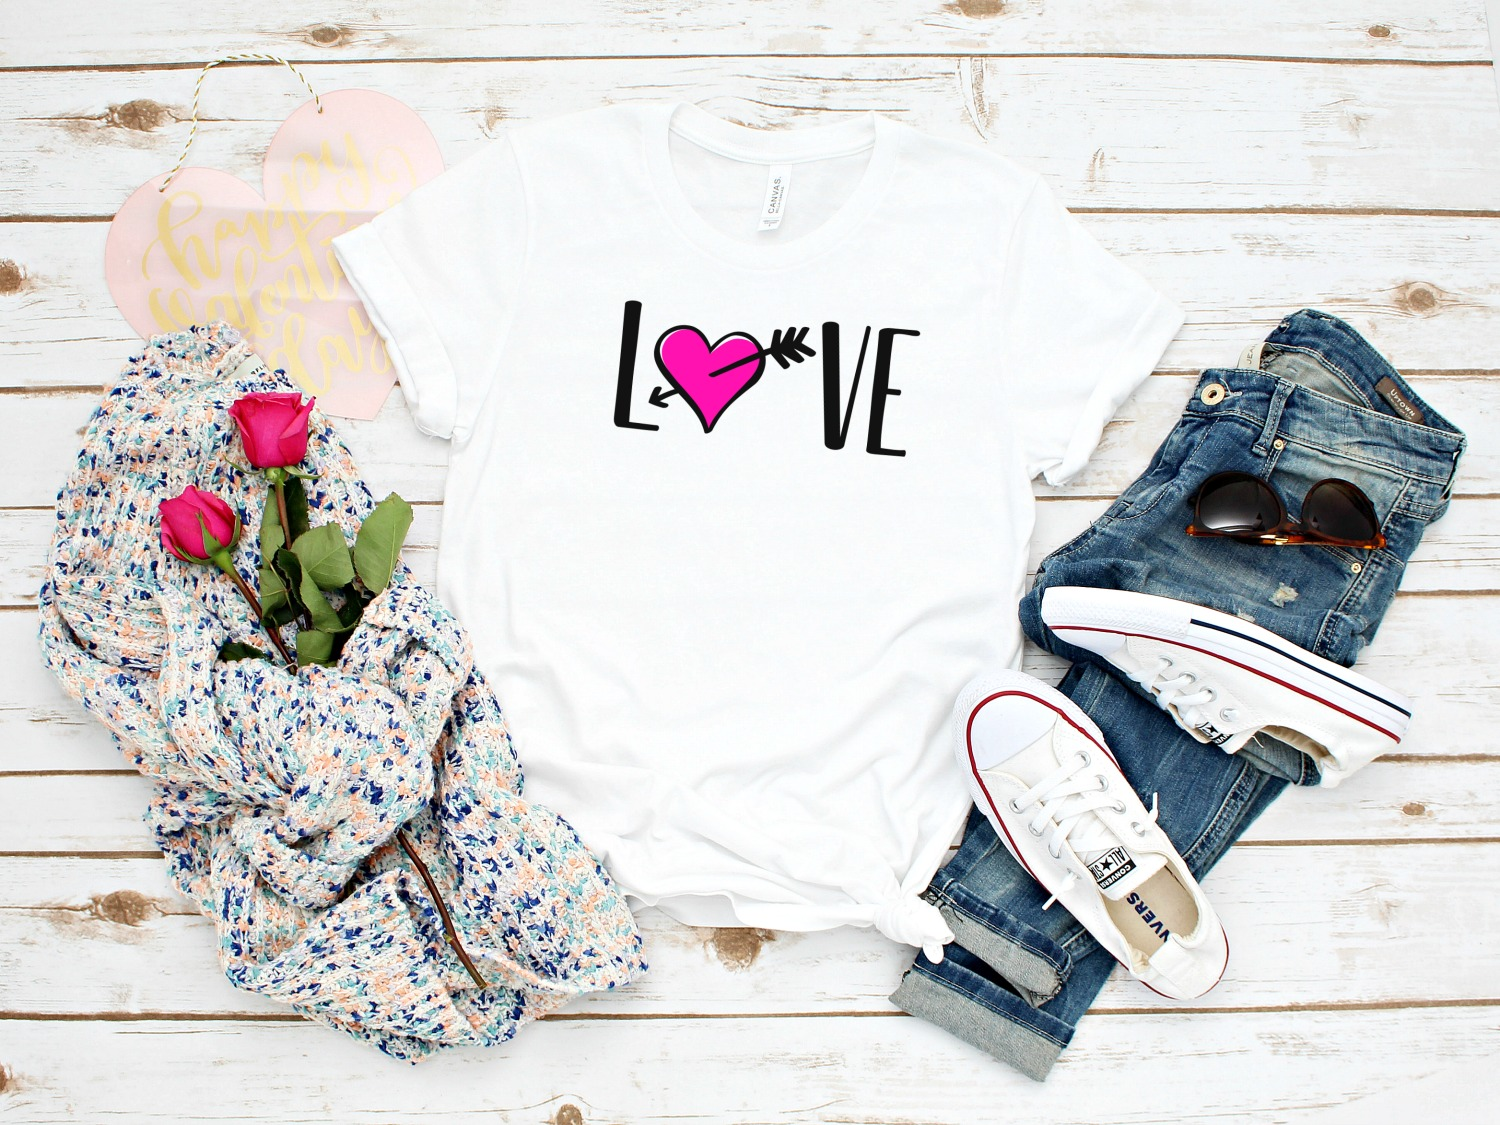 Create a cute custom shirt for Valentines Day, Honeymoon or Bachelorette using your Cricut or Silhouette cutting machine and Hello Creative Familys free Love SVG File! A fun and easy craft project! #SVG #Cricut #Silhouette #Crafts